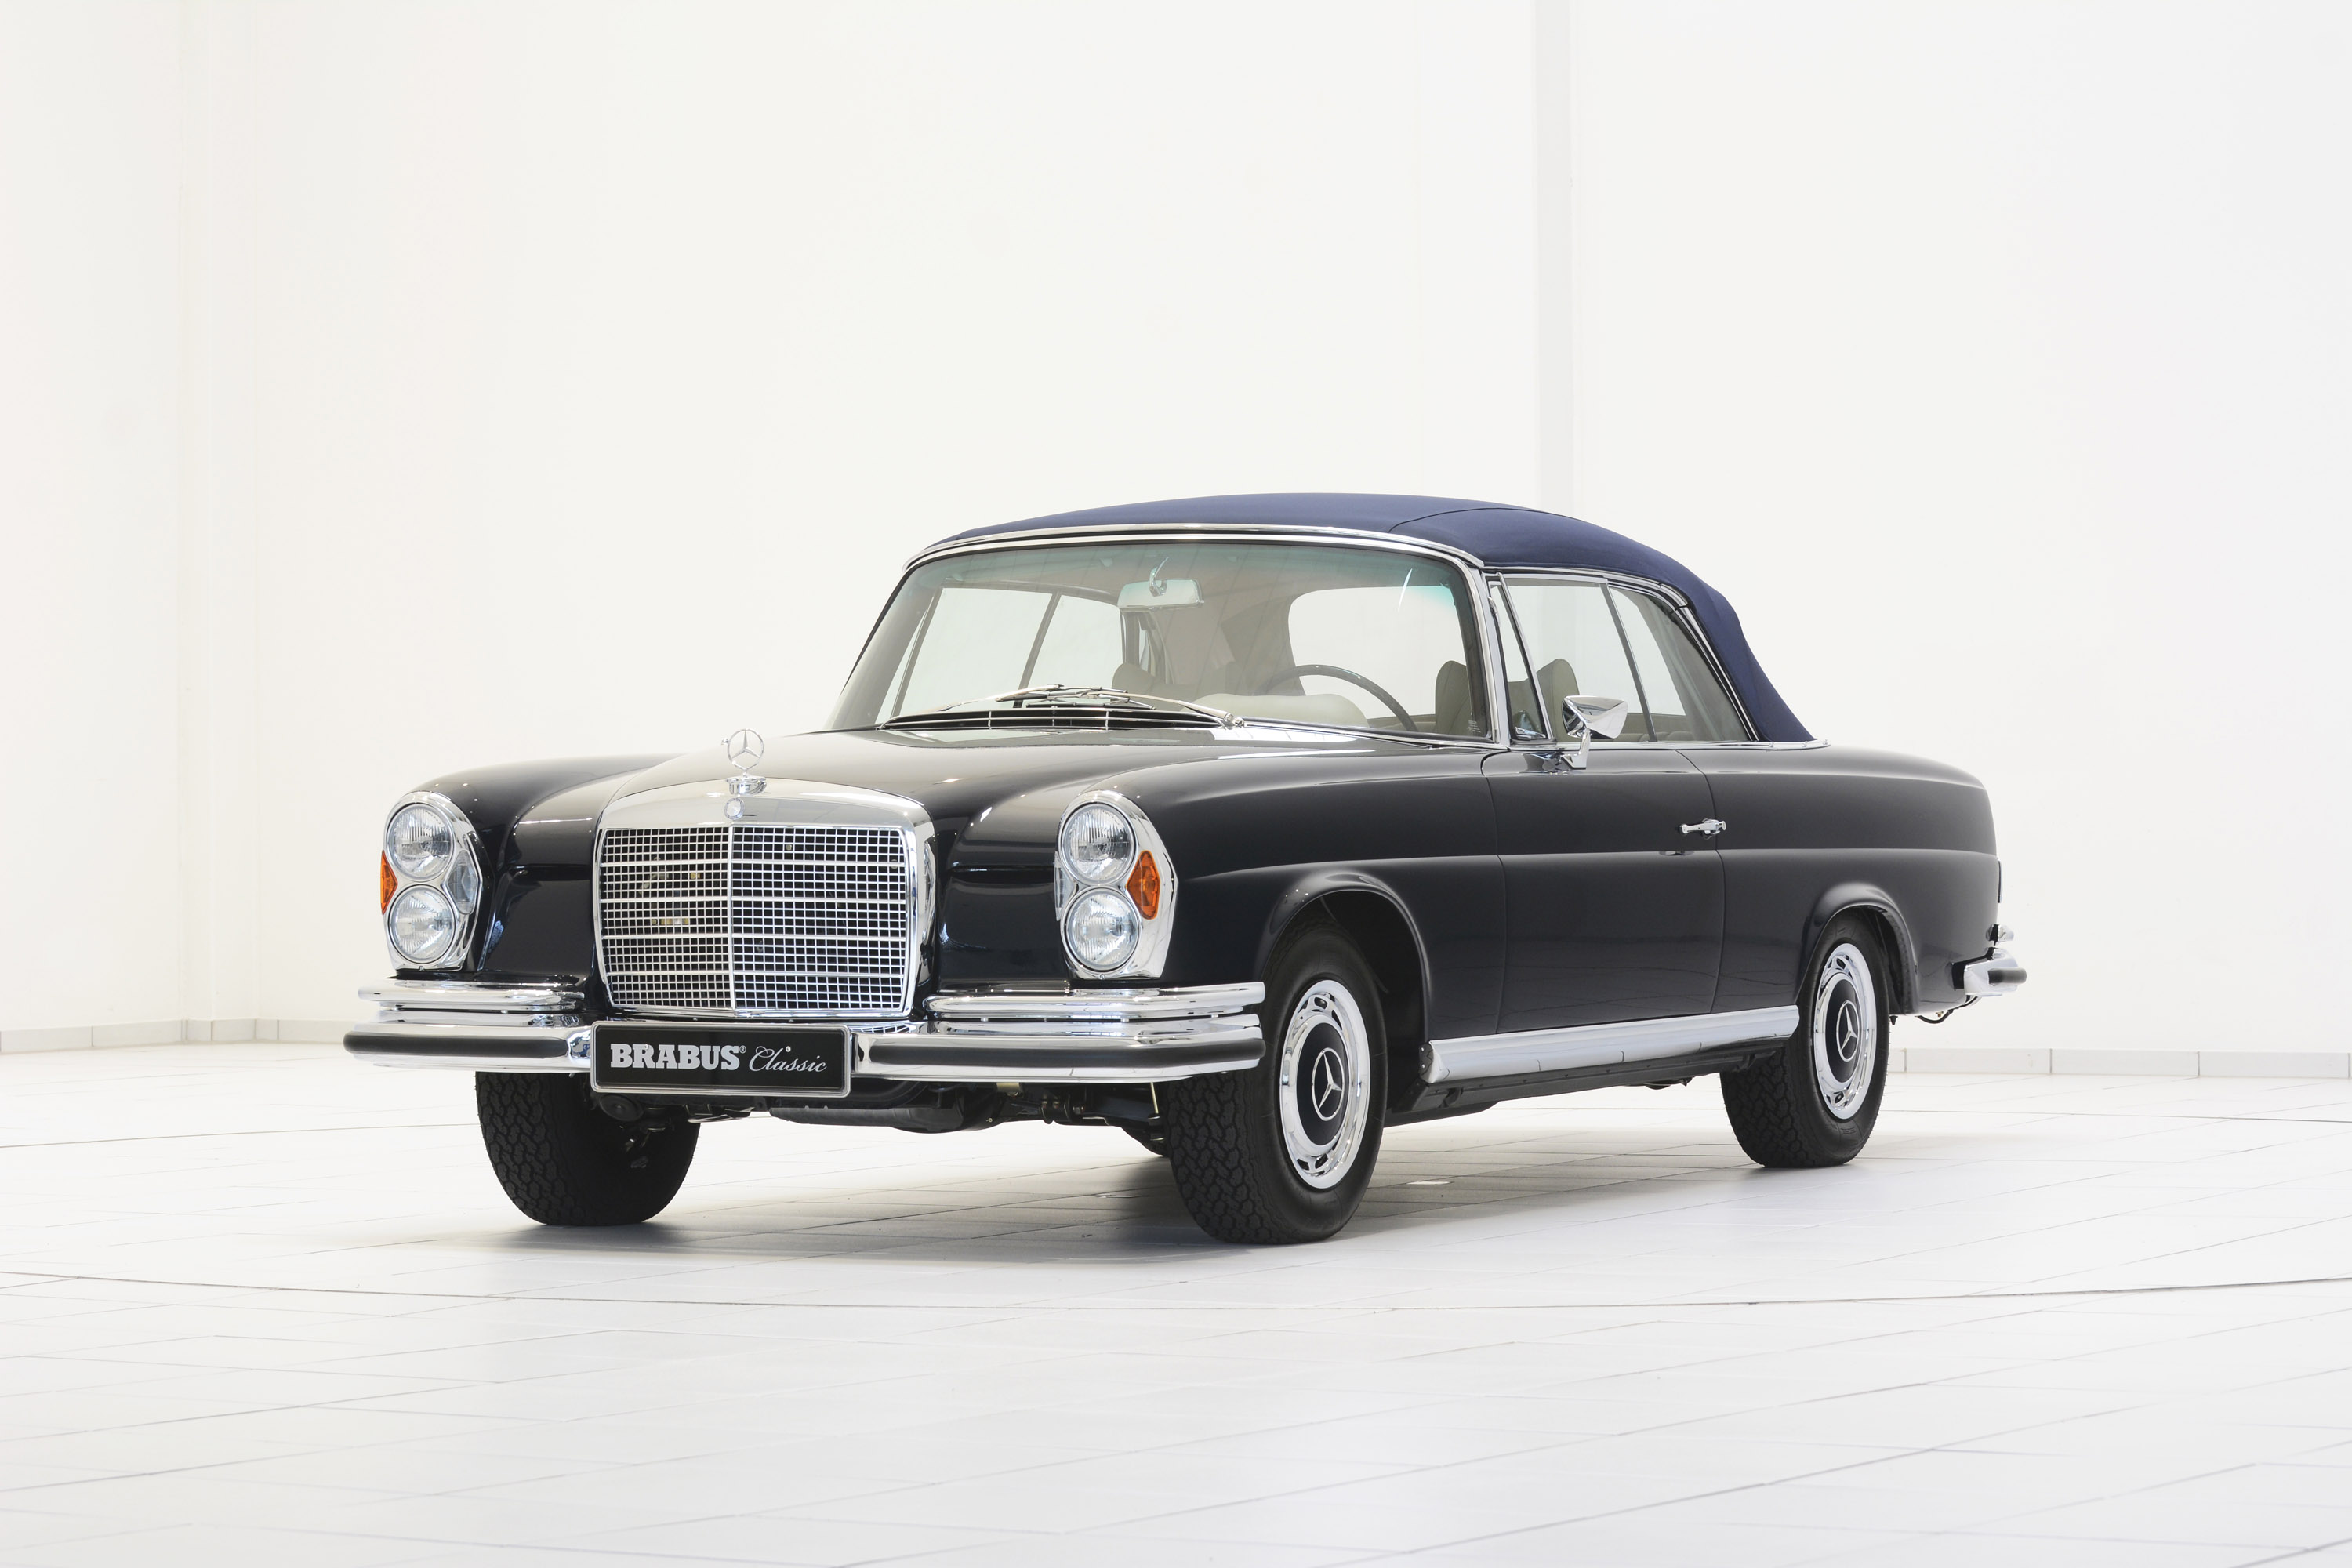 Brabus classic mercedes benz 280 se 3 5 cabriolet w111 for Mercedes benz of cleveland